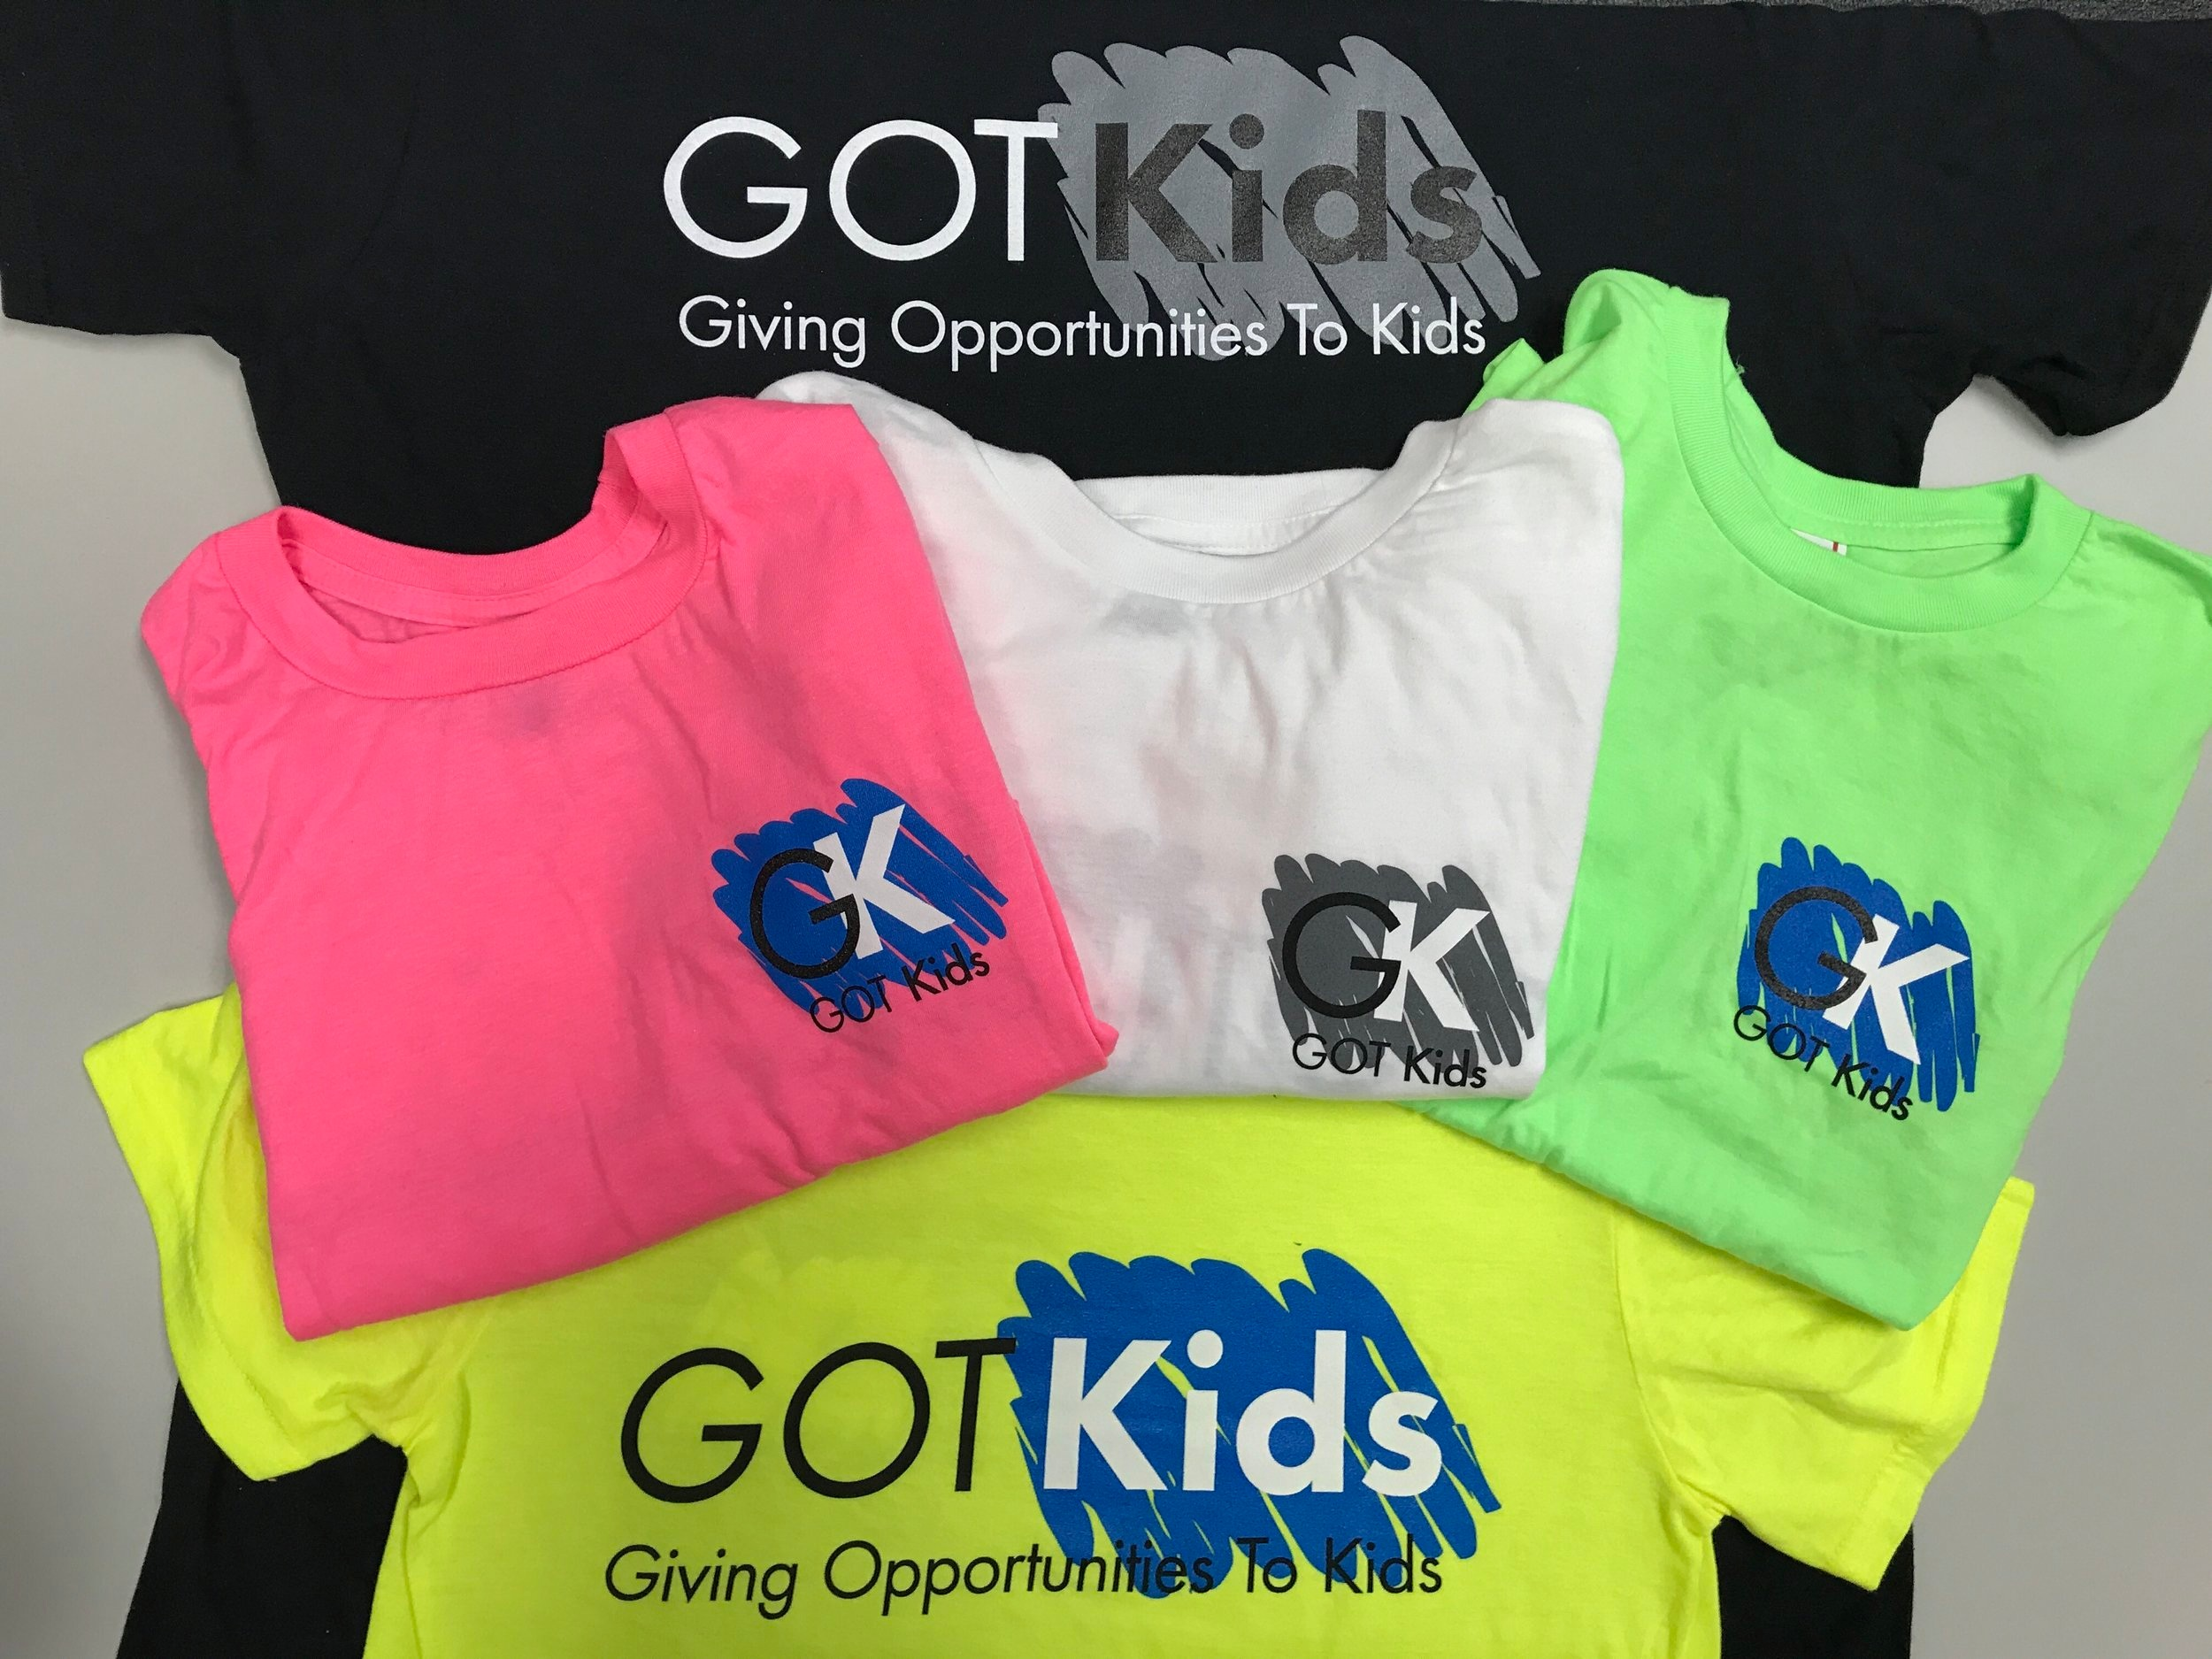 Buy One, Give One - When you purchase a GOT Kids t-shirt, an item of clothing is given to a child in need, creating a WIN/WIN.